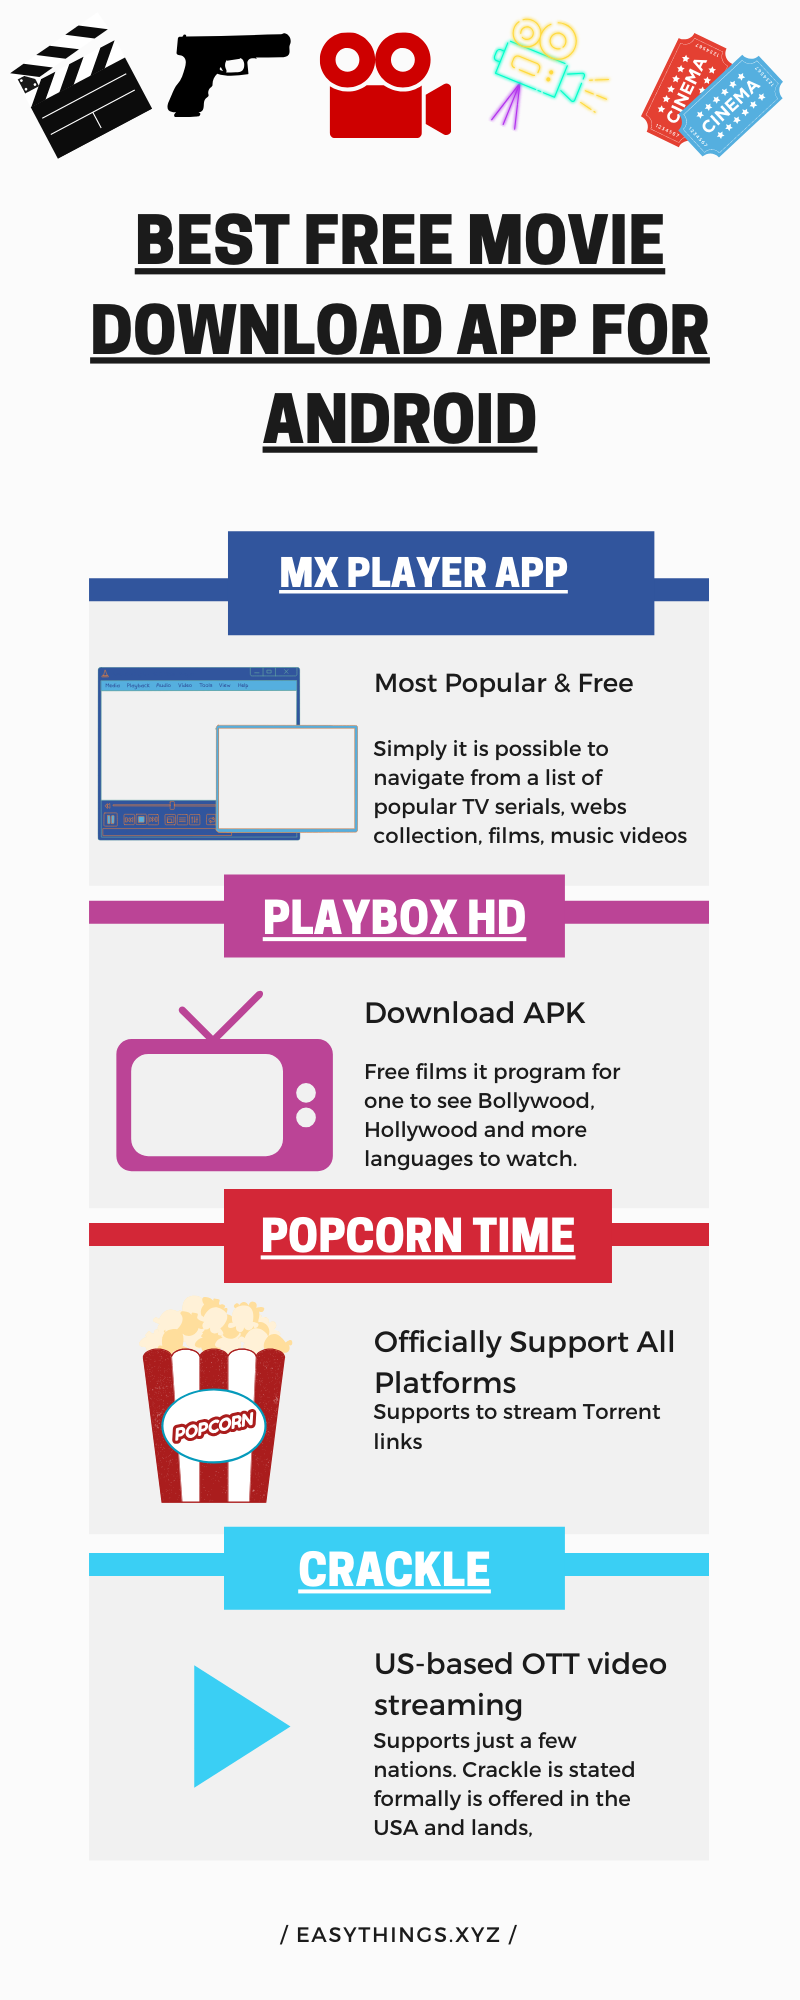 Best free movies app for android, watch free movies, tv shows and more content